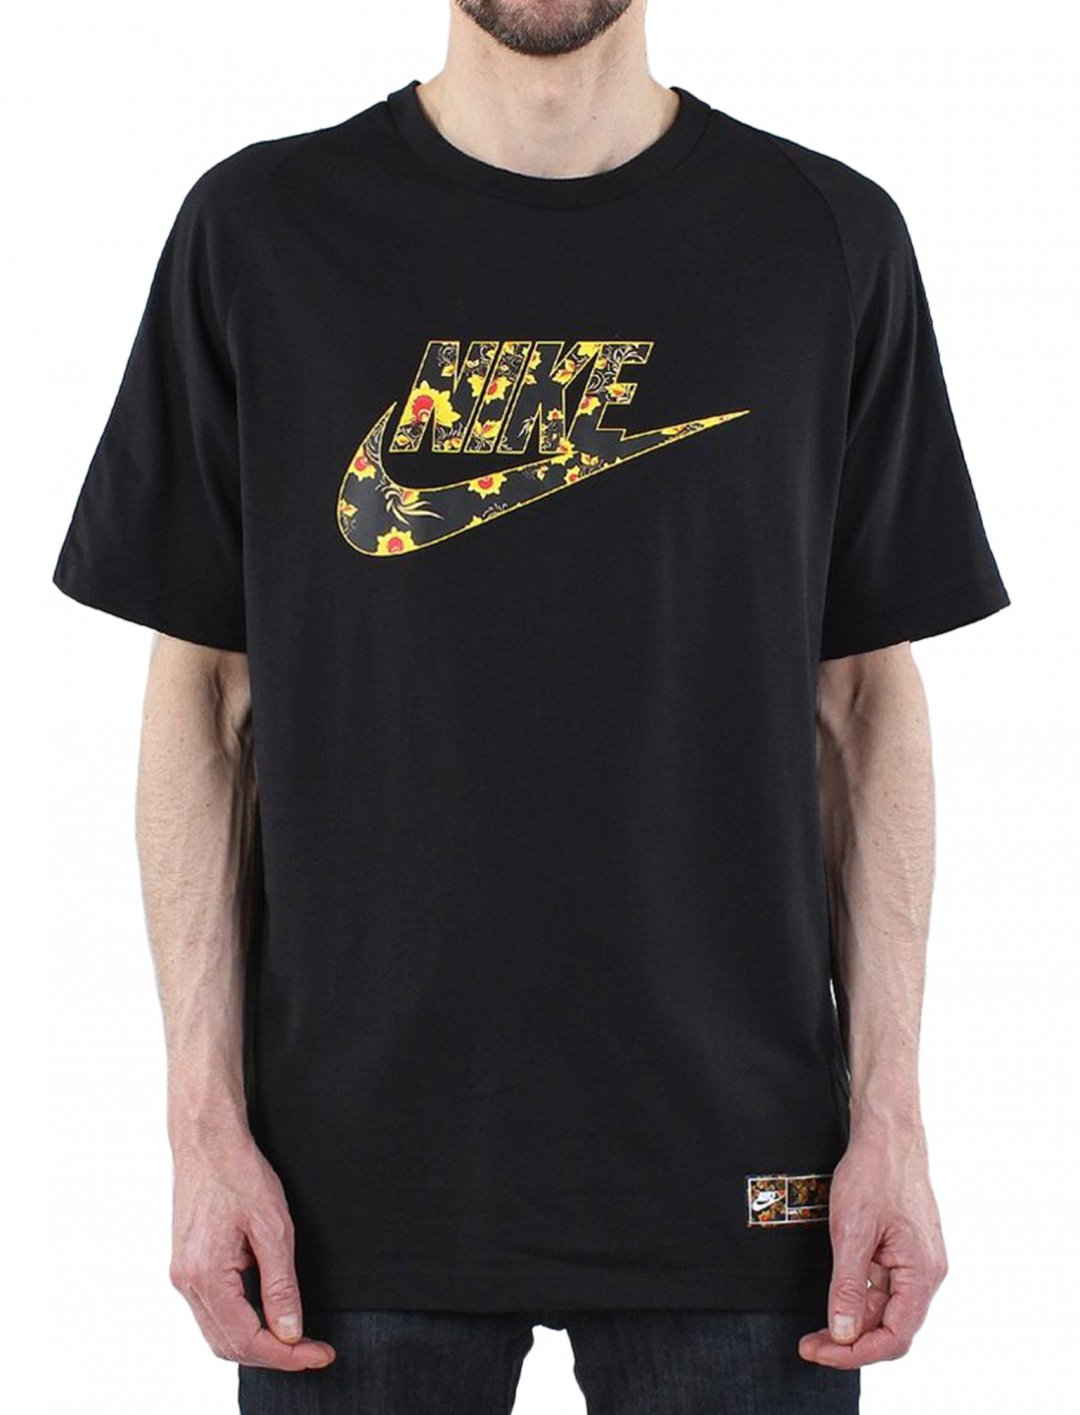 "Not3s' Floral T-shirt {""id"":5,""product_section_id"":1,""name"":""Clothing"",""order"":5} Nike"